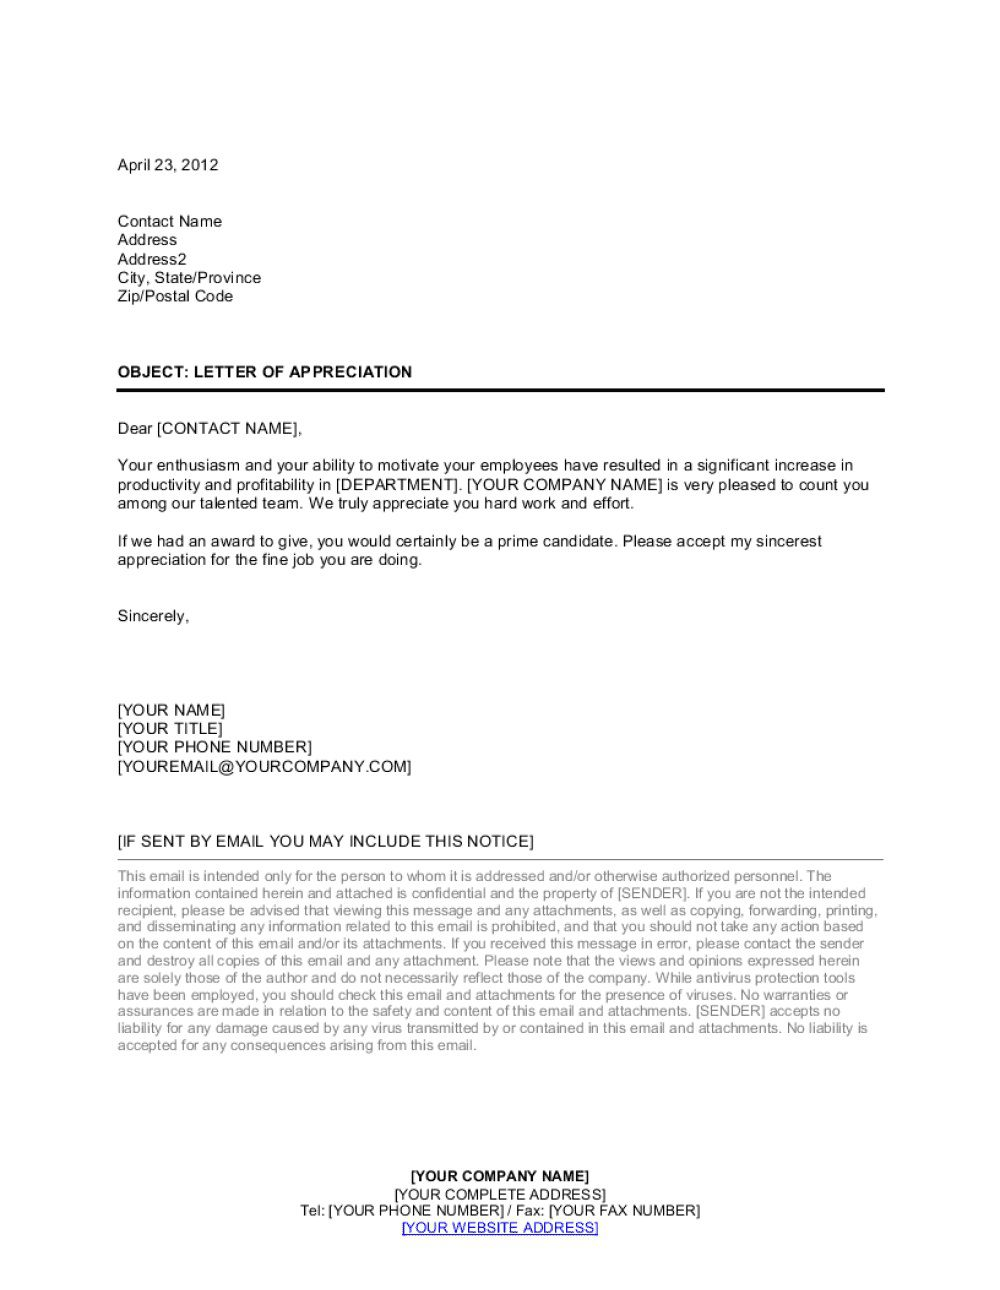 007 Surprising Letter Of Appreciation Template Inspiration  Example Employee Usmc Format For TheFull